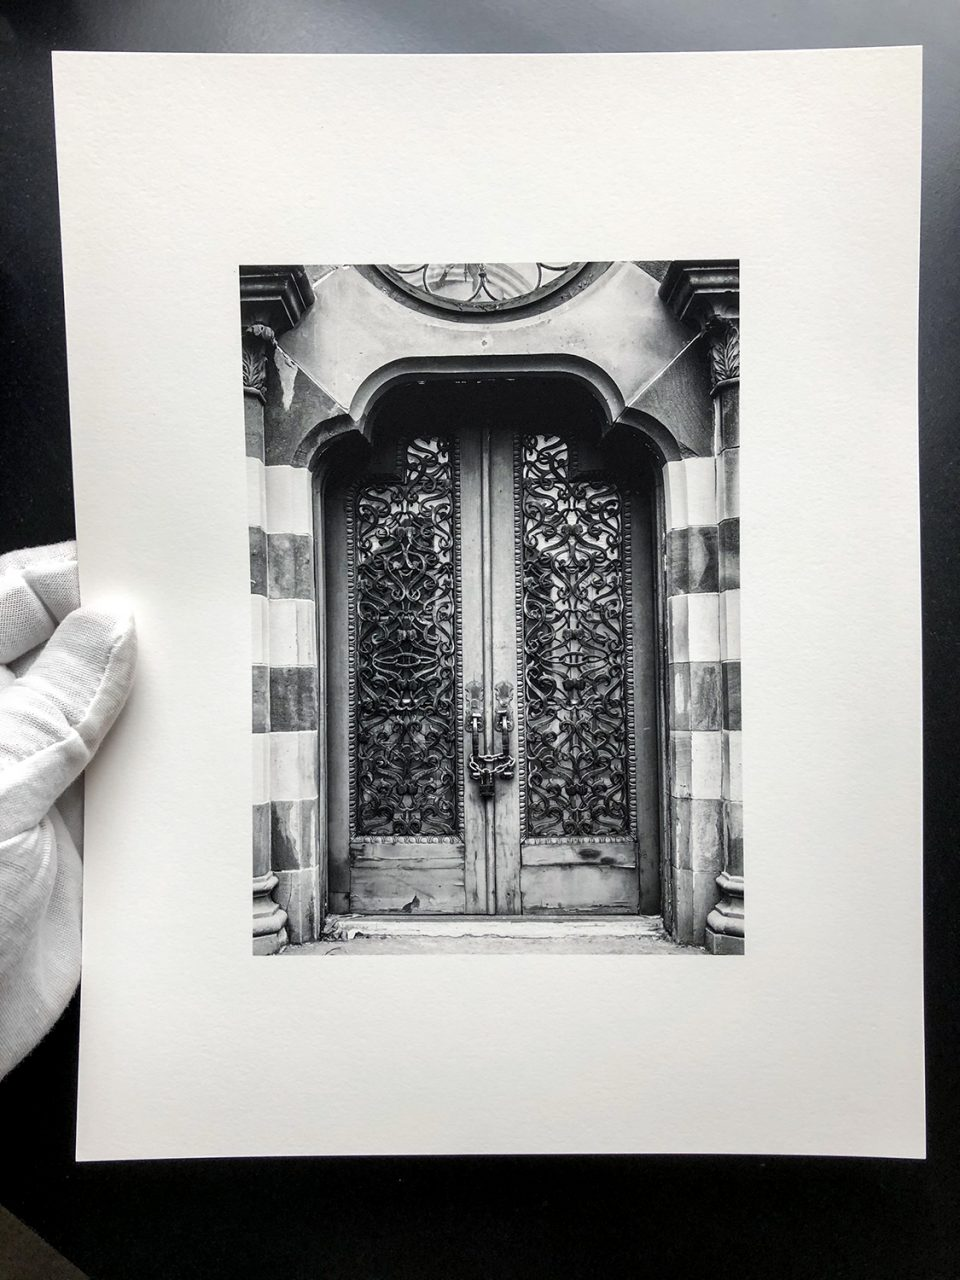 iPhone photograph of an actual 5x7-inch print on baryta surface fine art paper.